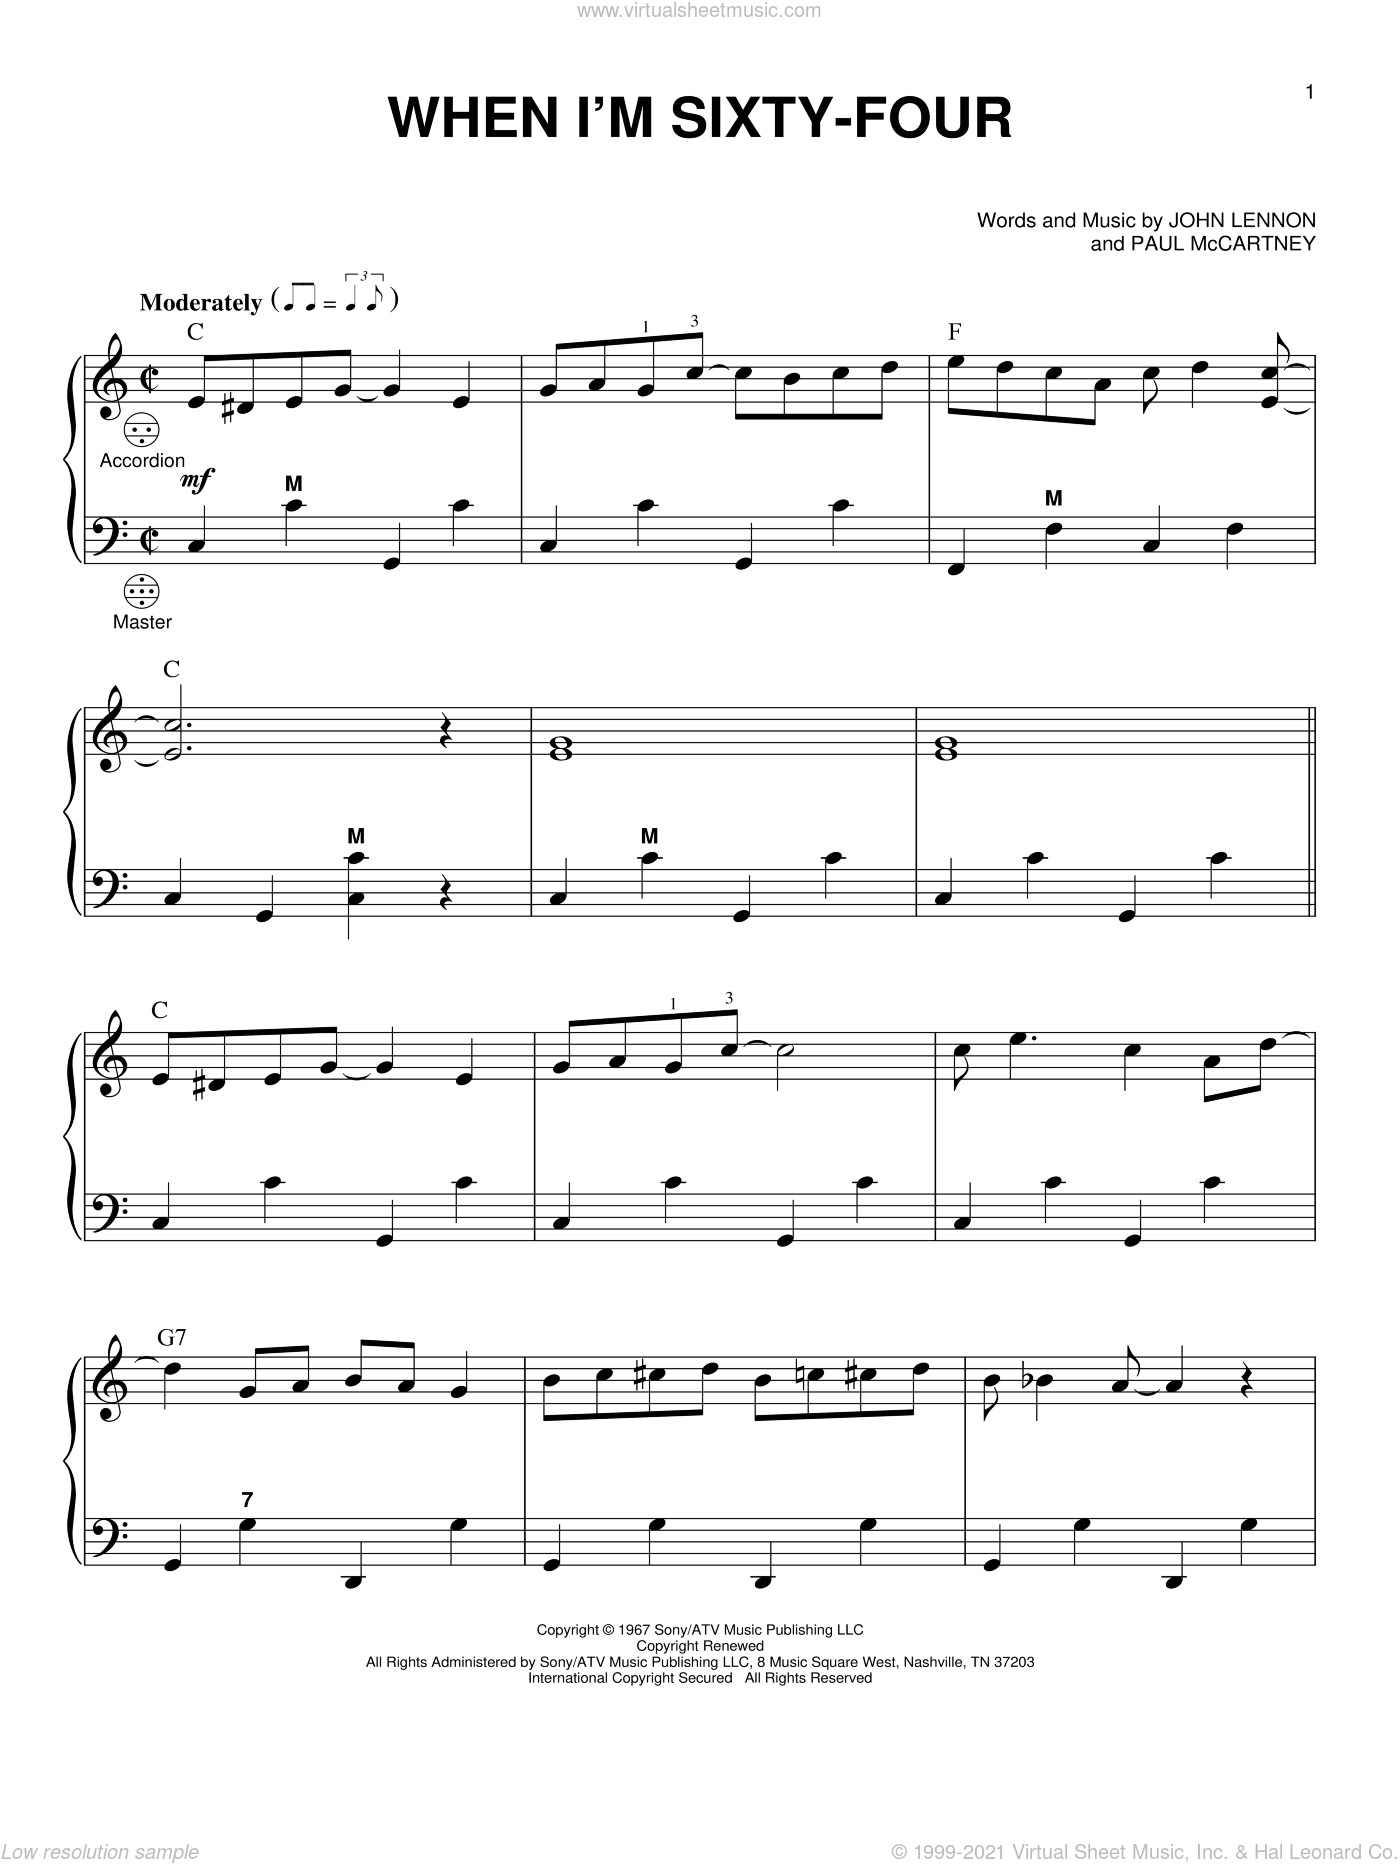 When I'm Sixty-Four sheet music for accordion by Paul McCartney, The Beatles and John Lennon